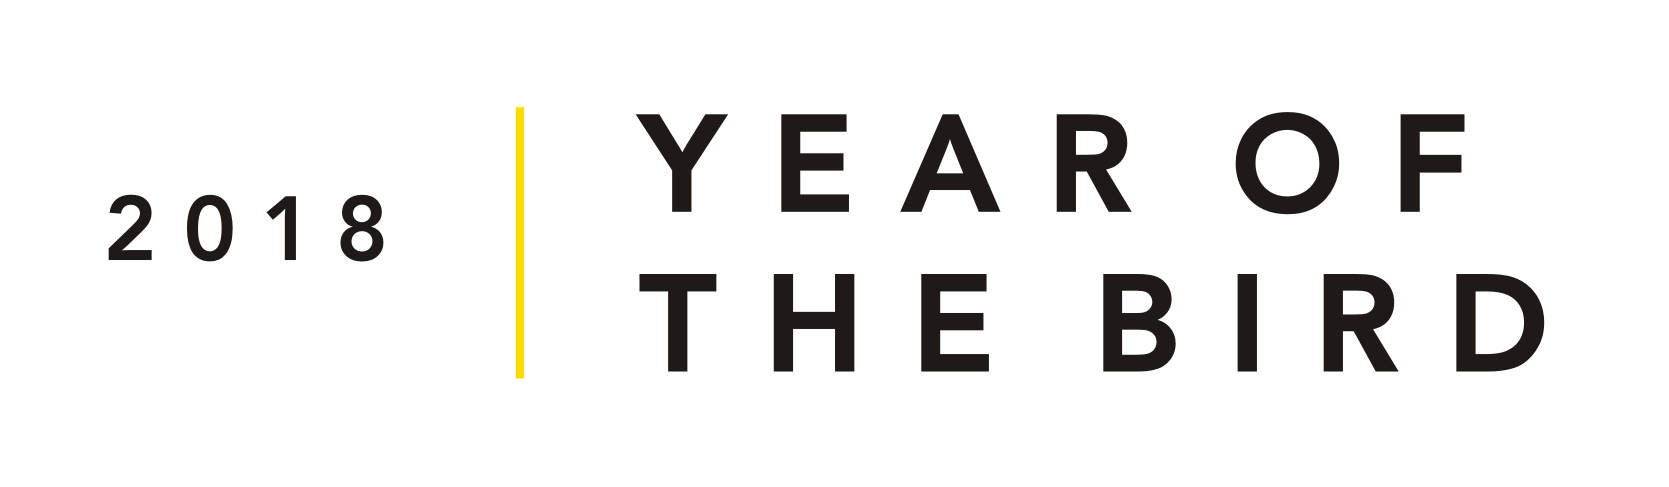 2018 Year of the Bird logo